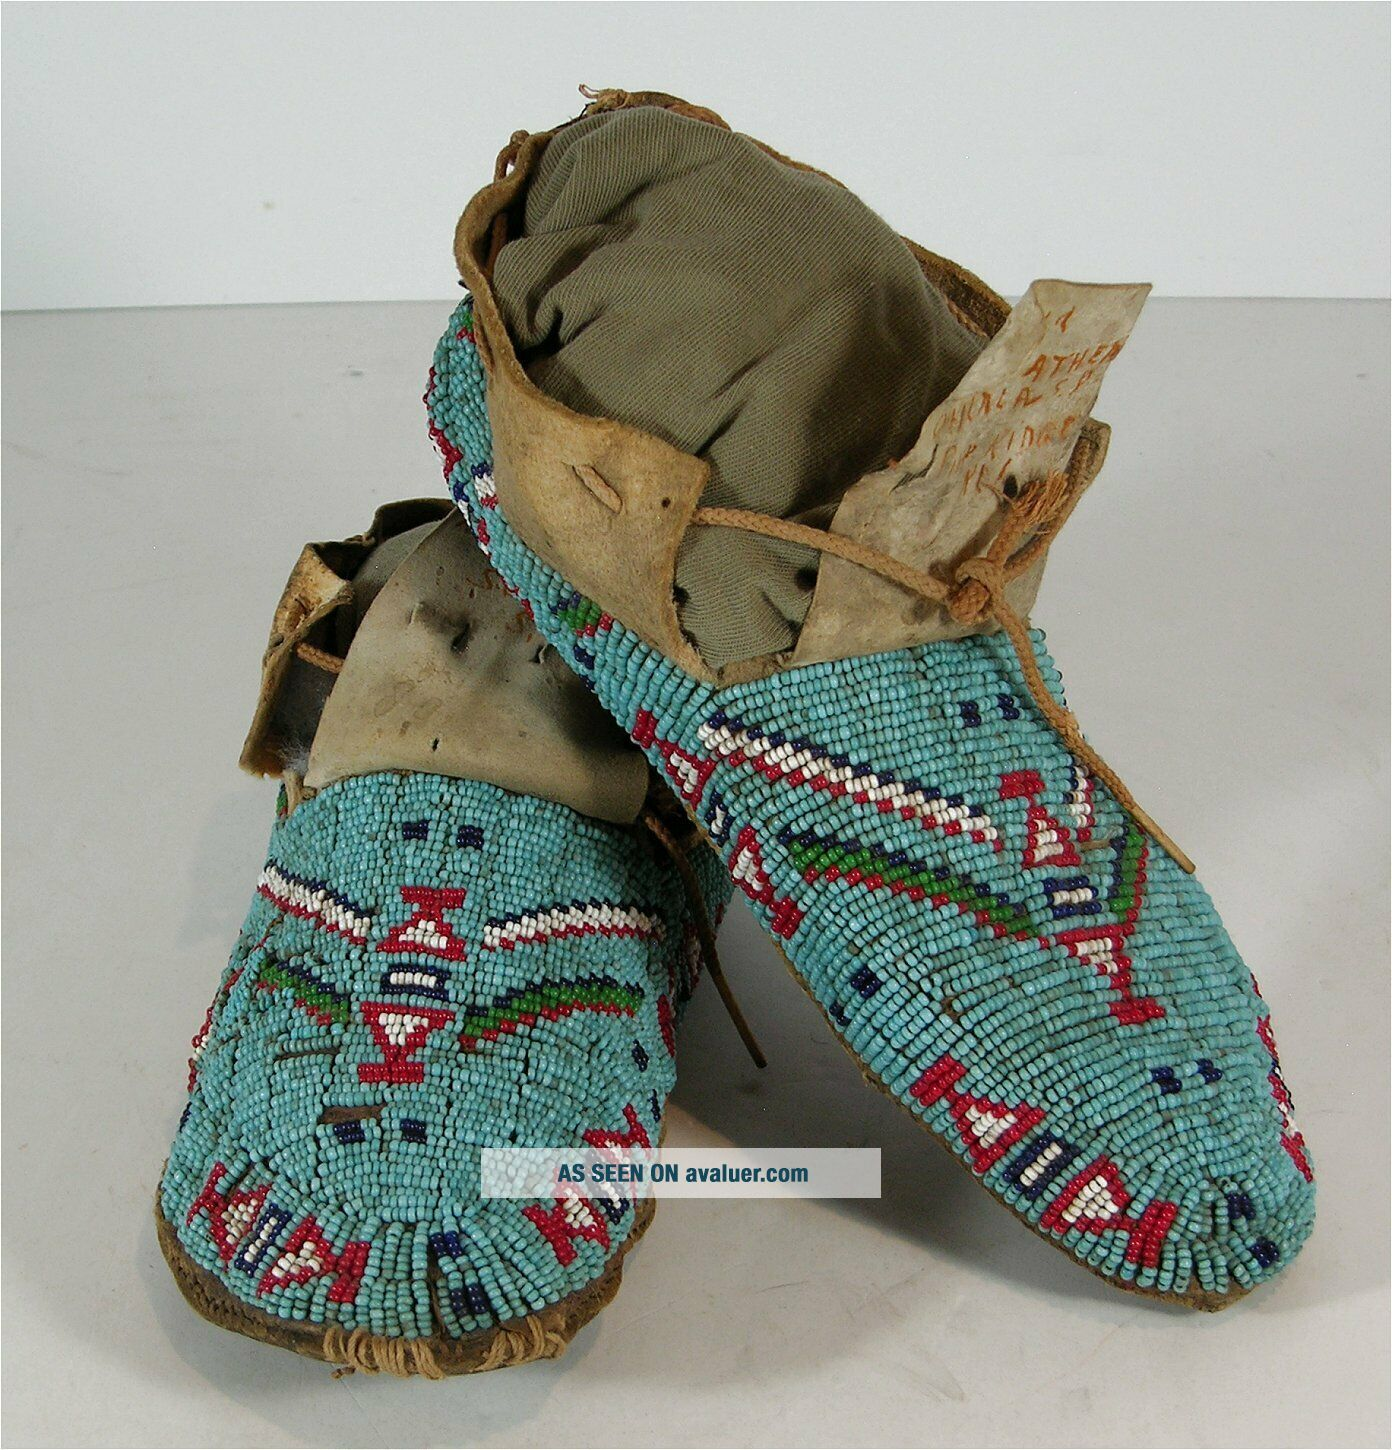 ca1900 PAIR NATIVE AMERICAN SIOUX INDIAN BEAD DECORATED HIDE MOCCASINS BEADED